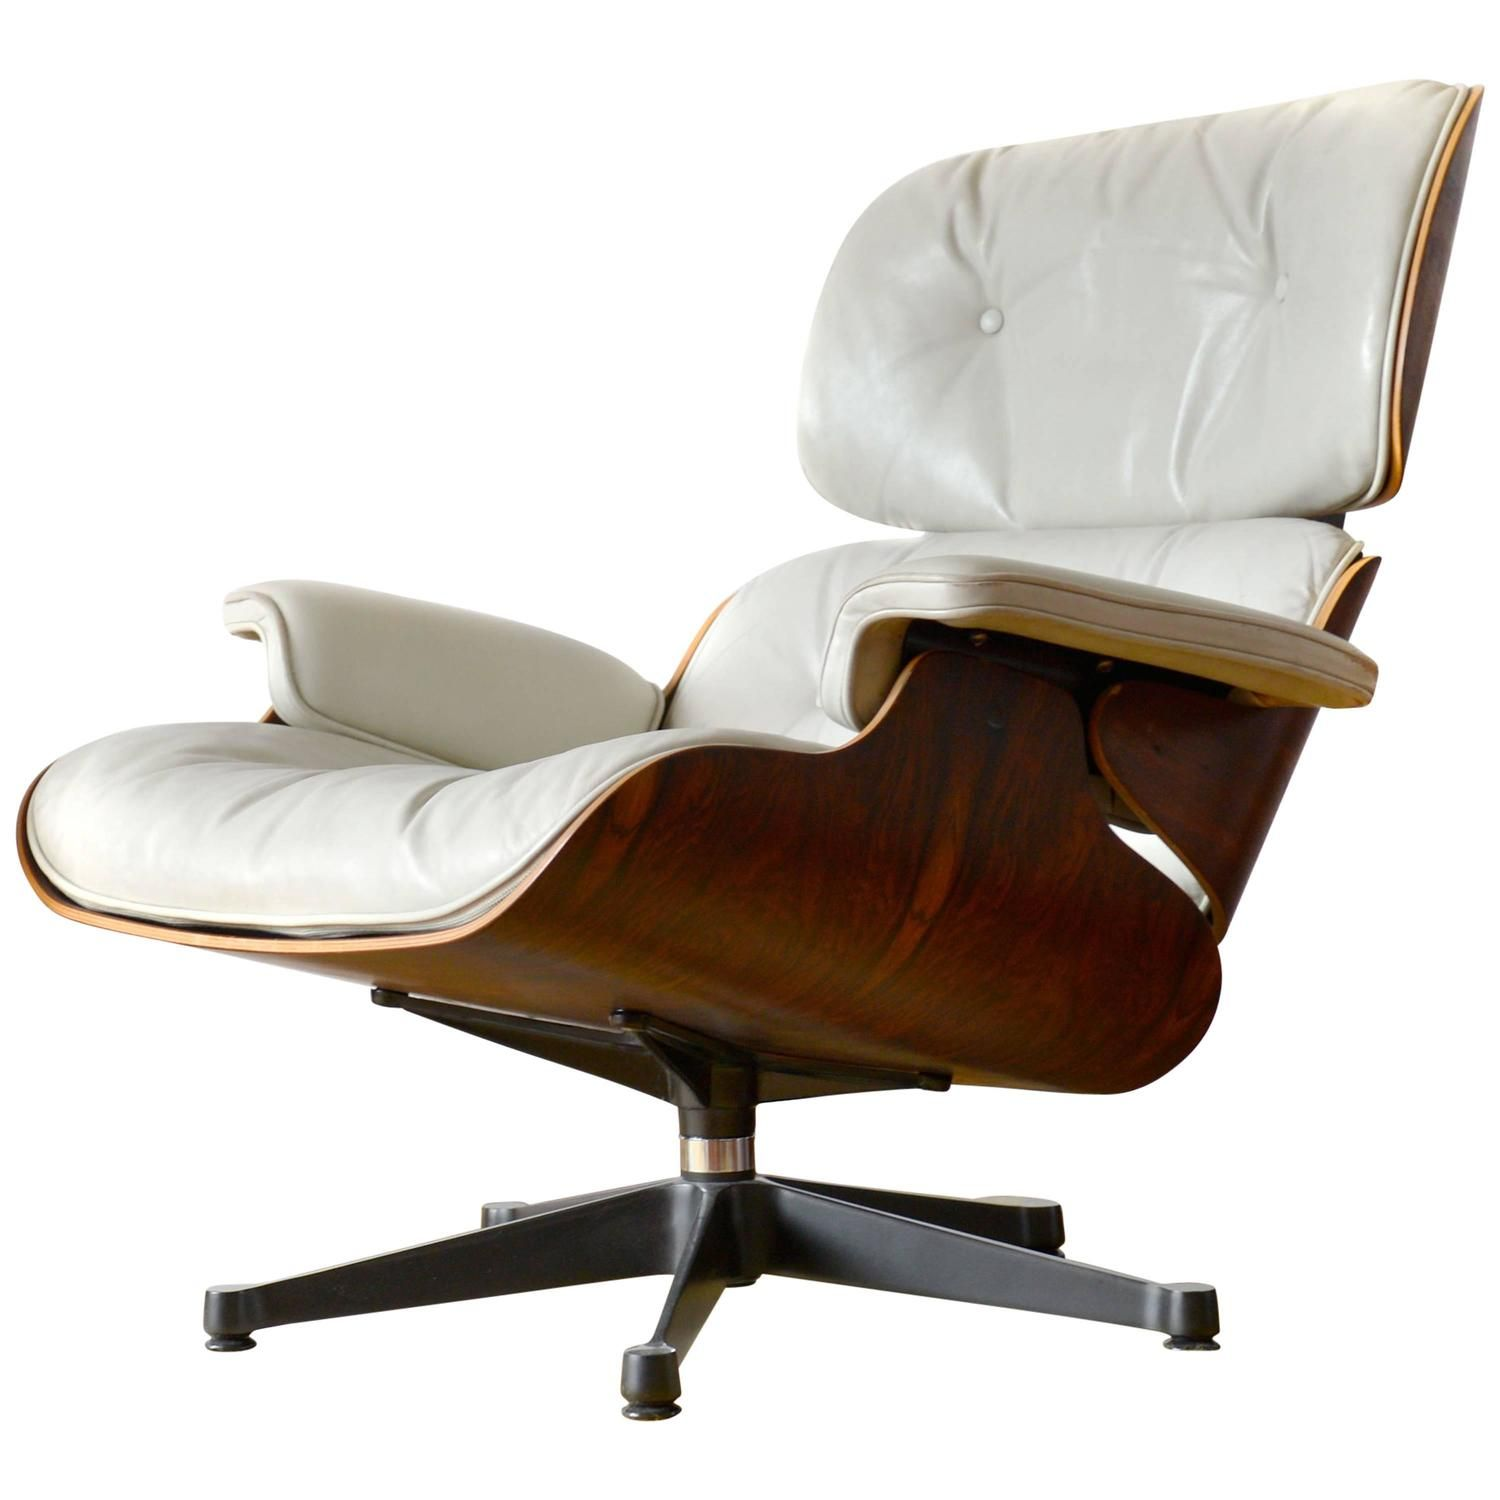 White Leather Lounge Chair Charles Eames Leather Lounge Chair Eames Lounge Chair Lounge Chair